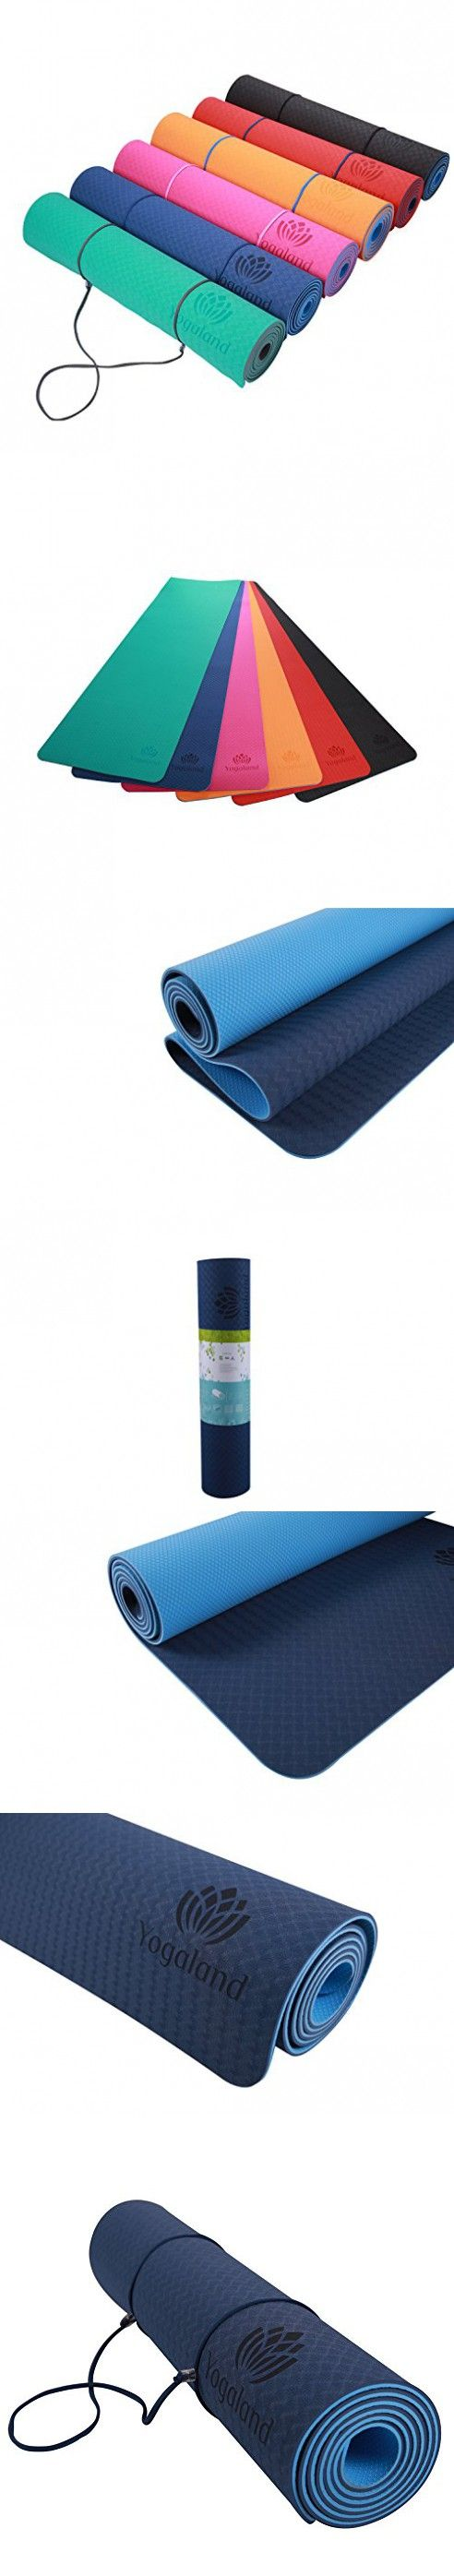 Yogaland Premium Yoga Mat Eco Friendly Tpe Material Textured Non Slip The Best Grid Durable Recycable 1 4 Or 6mm Multiple Colors Blue Material Textures Blue Color Yoga Mat